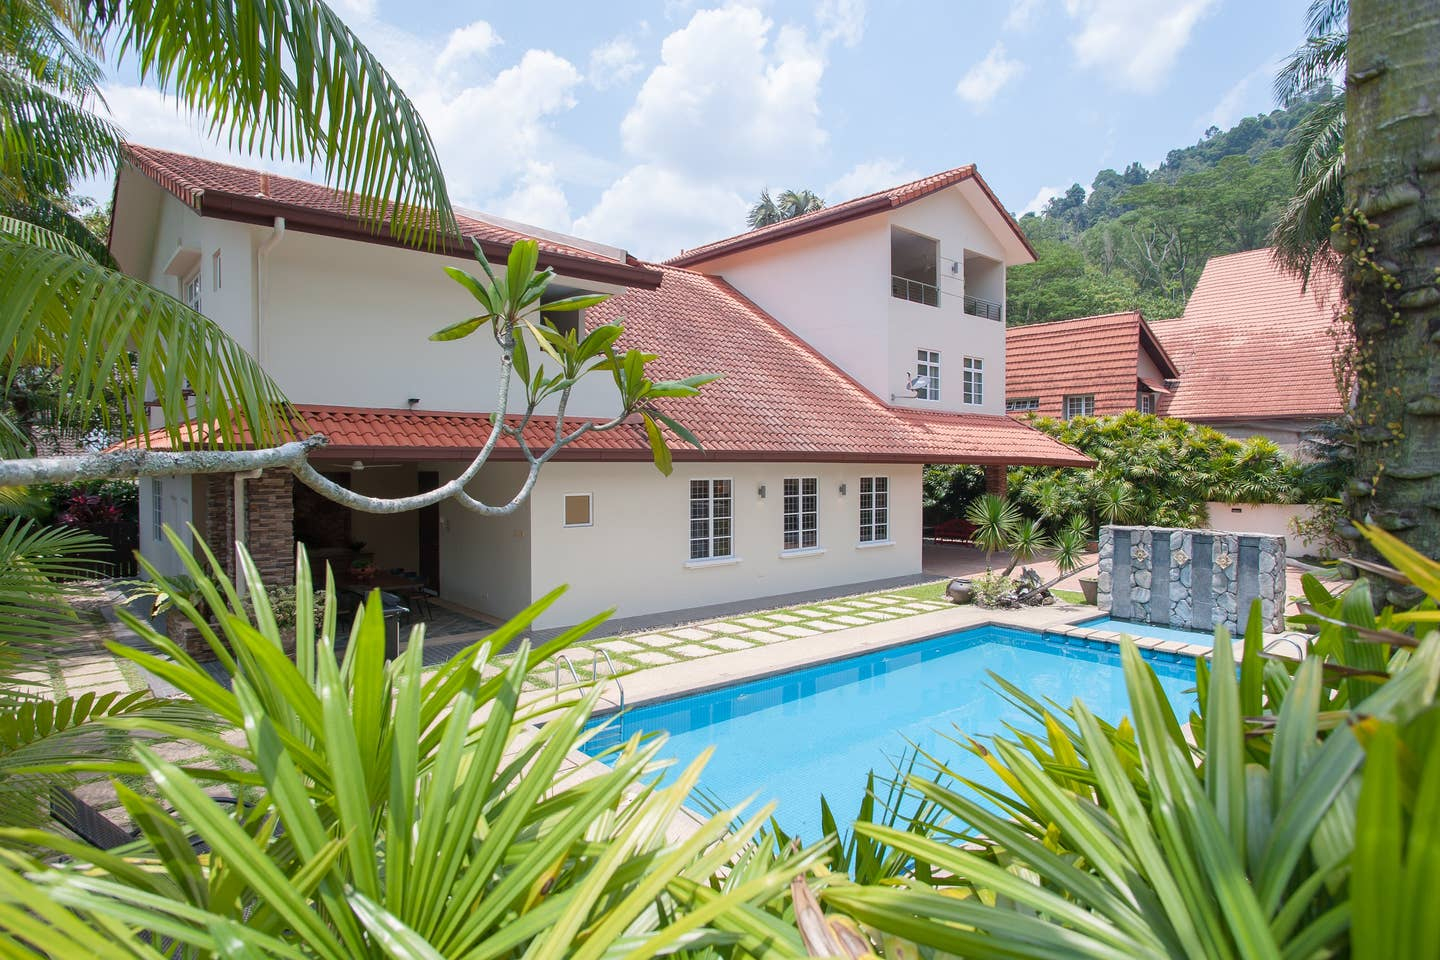 Best Kuala Lumpur Airbnb for Groups